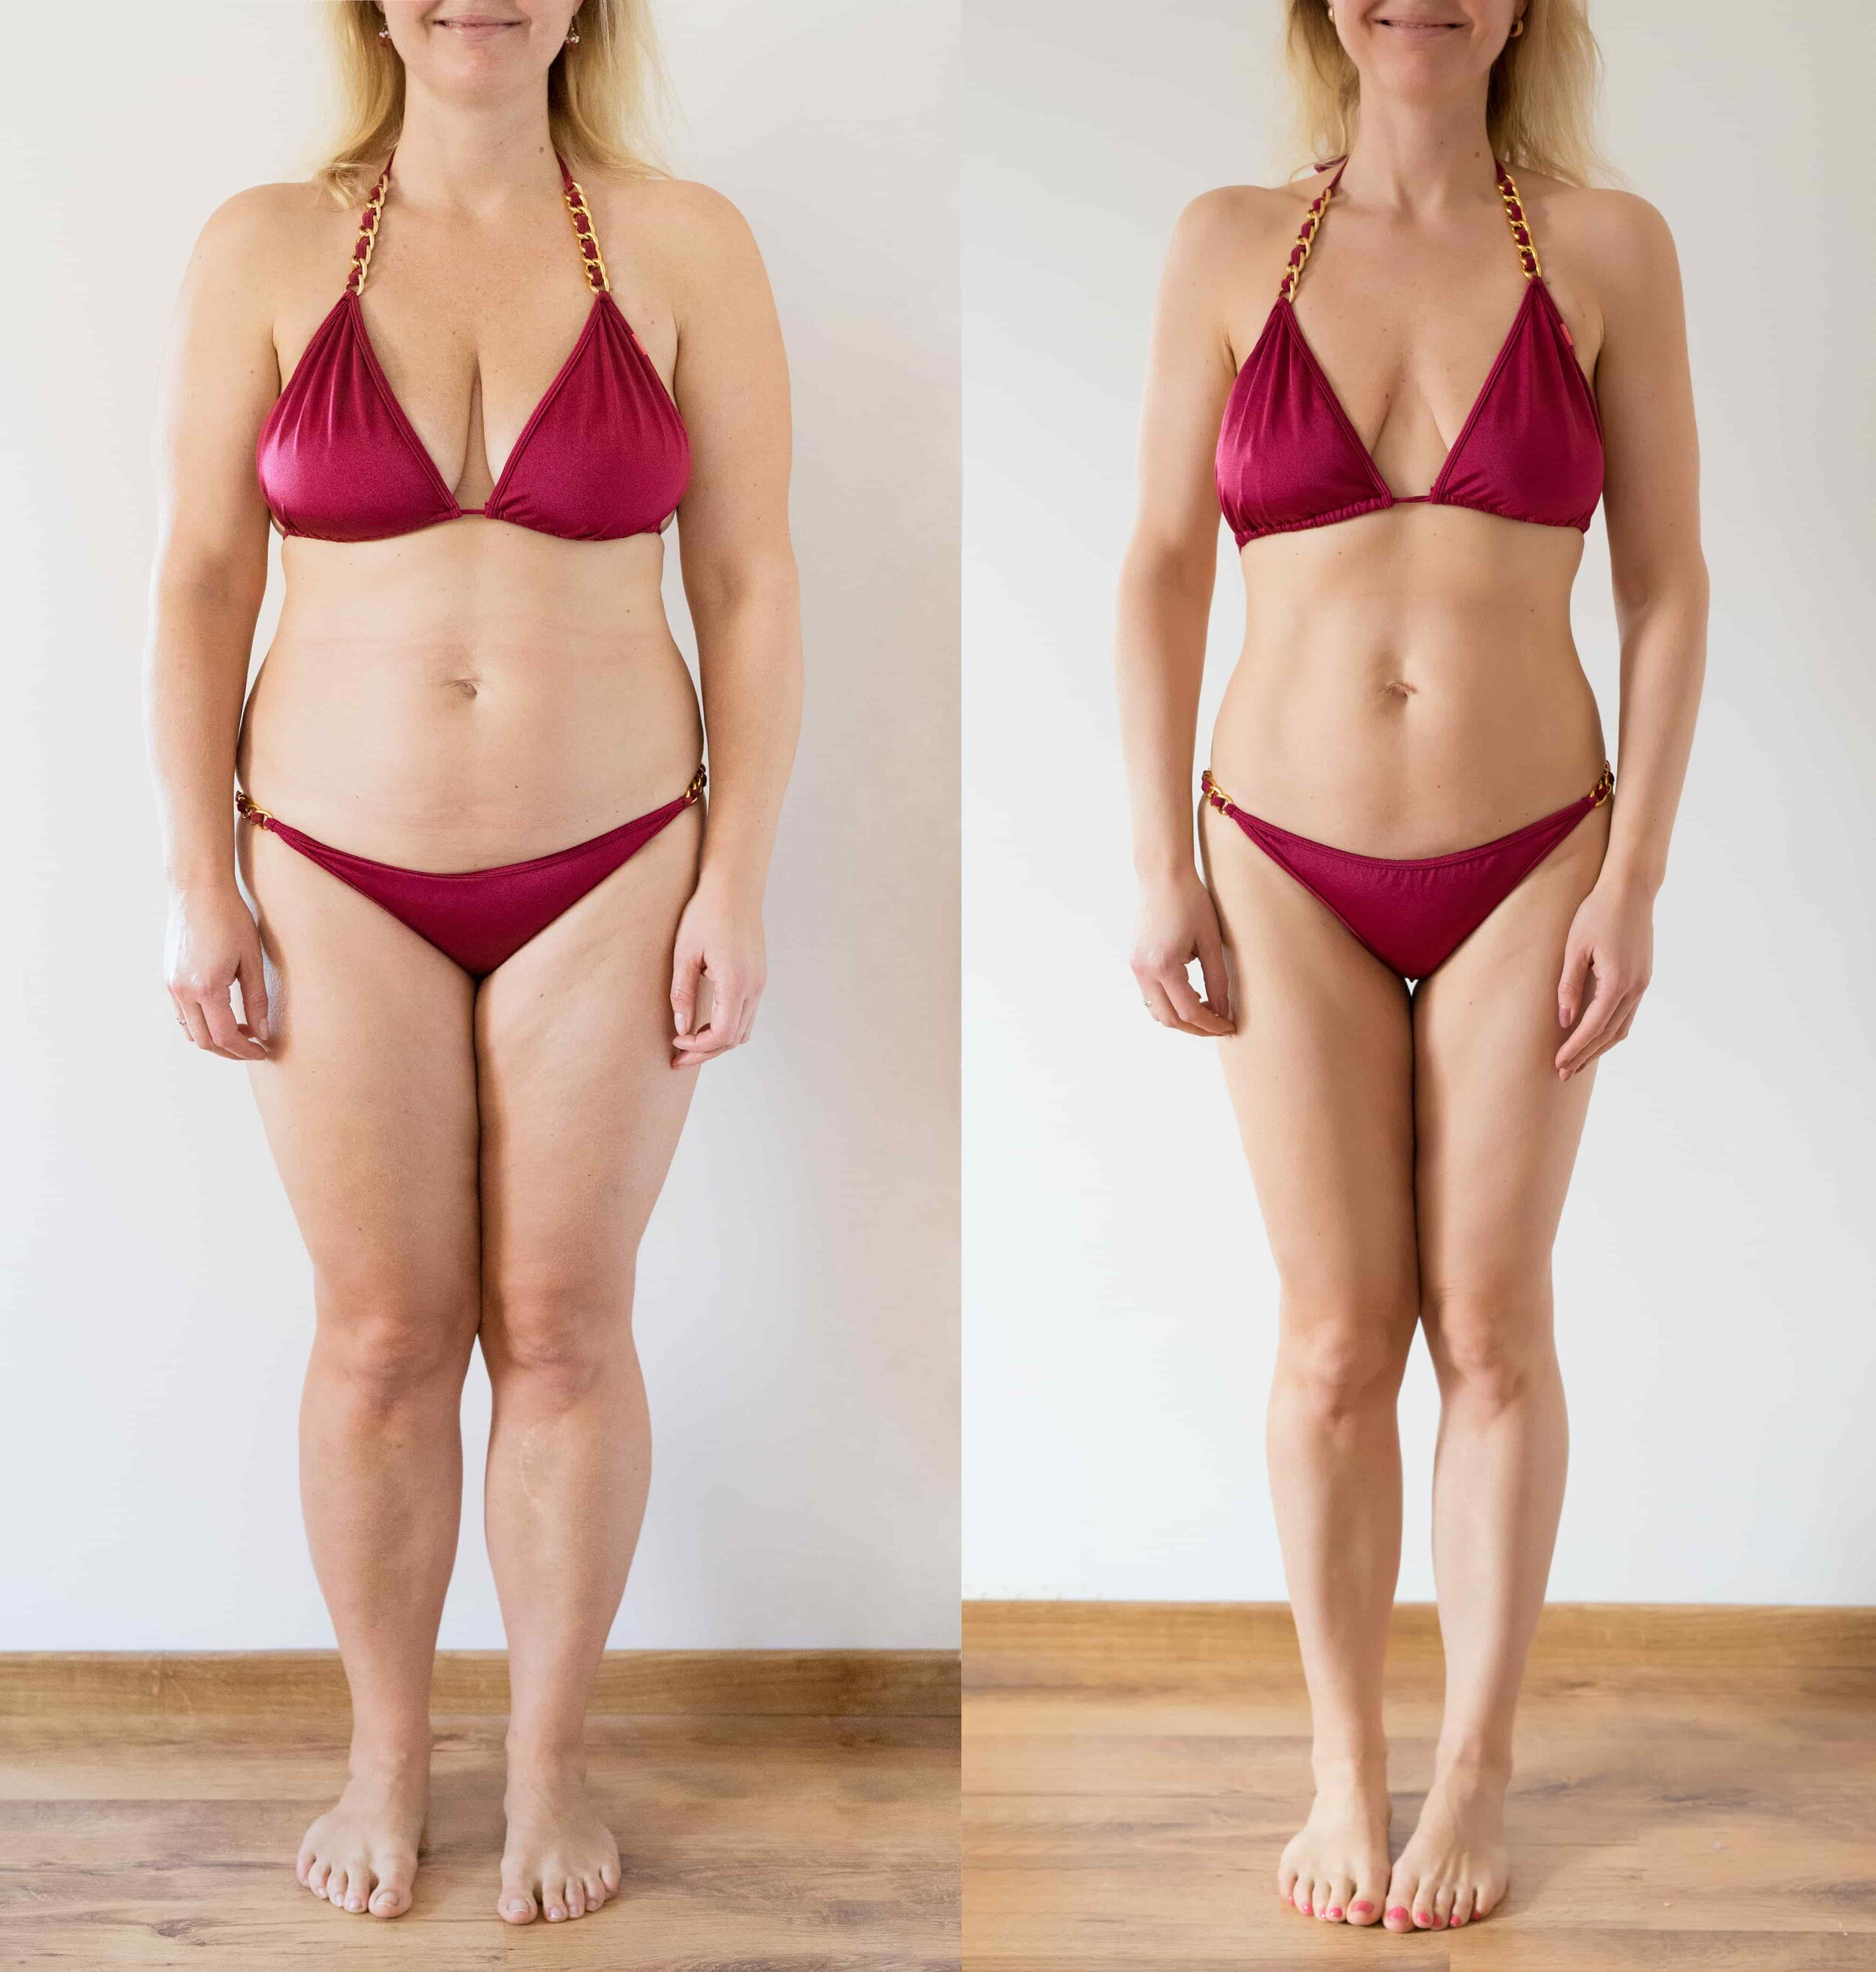 Keto Diet Weight Loss Before and After—How long it takes to reach a state of ketosis with the ketogenic diet depends on a few factors. But following these tips will get you to ketosis ASAP and keep the numbers on the scale dropping. #keto #weightloss #week1 #diet #ketoforbeginners #startingketo #ketoexplained #losingweight #keto #ketogenicdiet